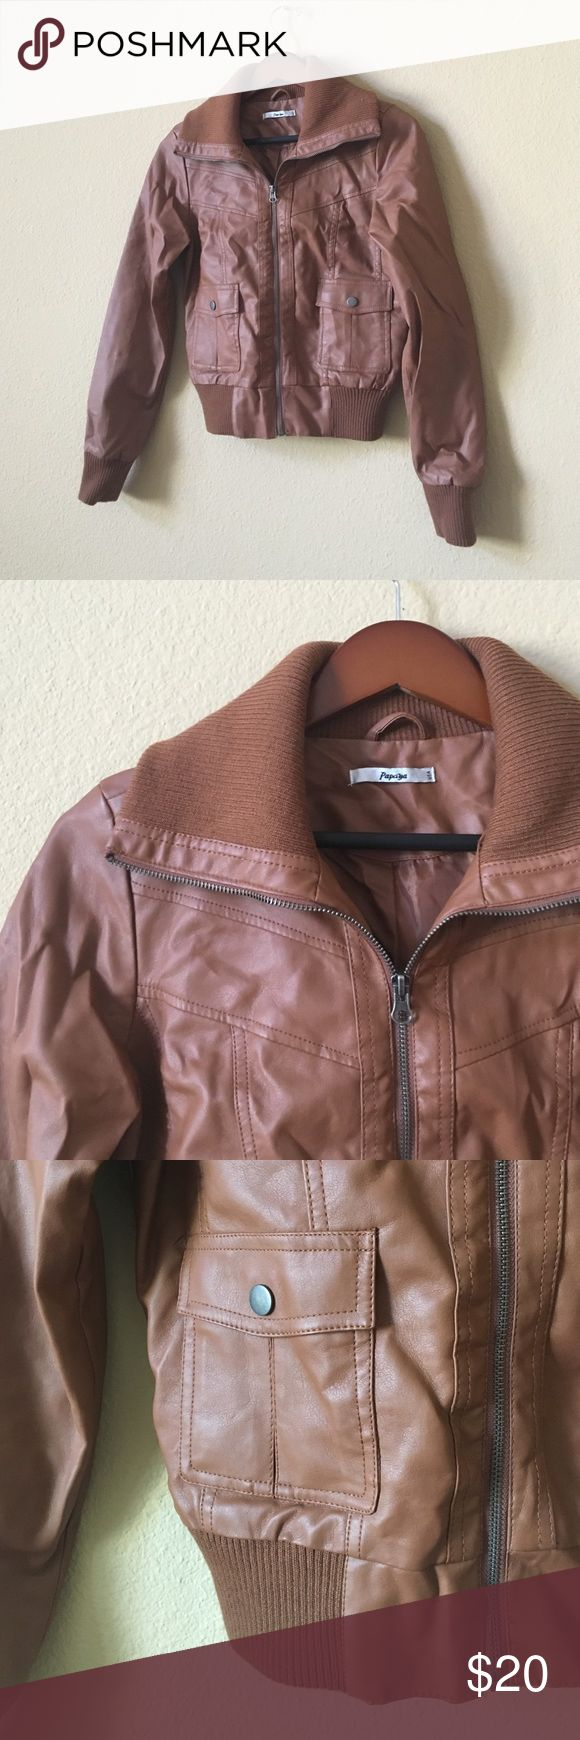 Papaya Brown Bomber Jacket All items come from a smoke free home! Feel free to message me with any questions :) Papaya Jackets & Coats